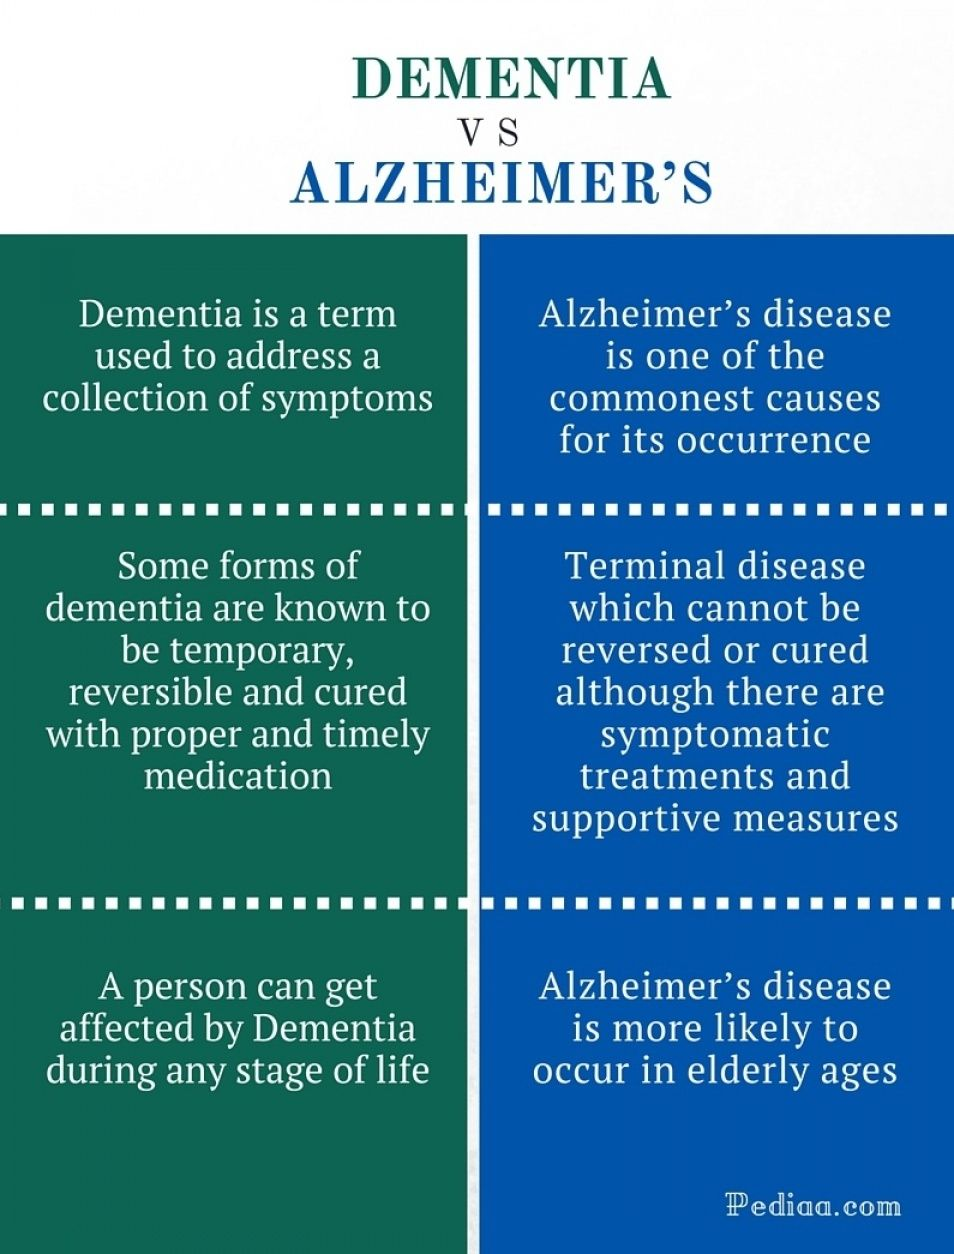 What Is The Difference Between Dementia And Alzheimers Disease